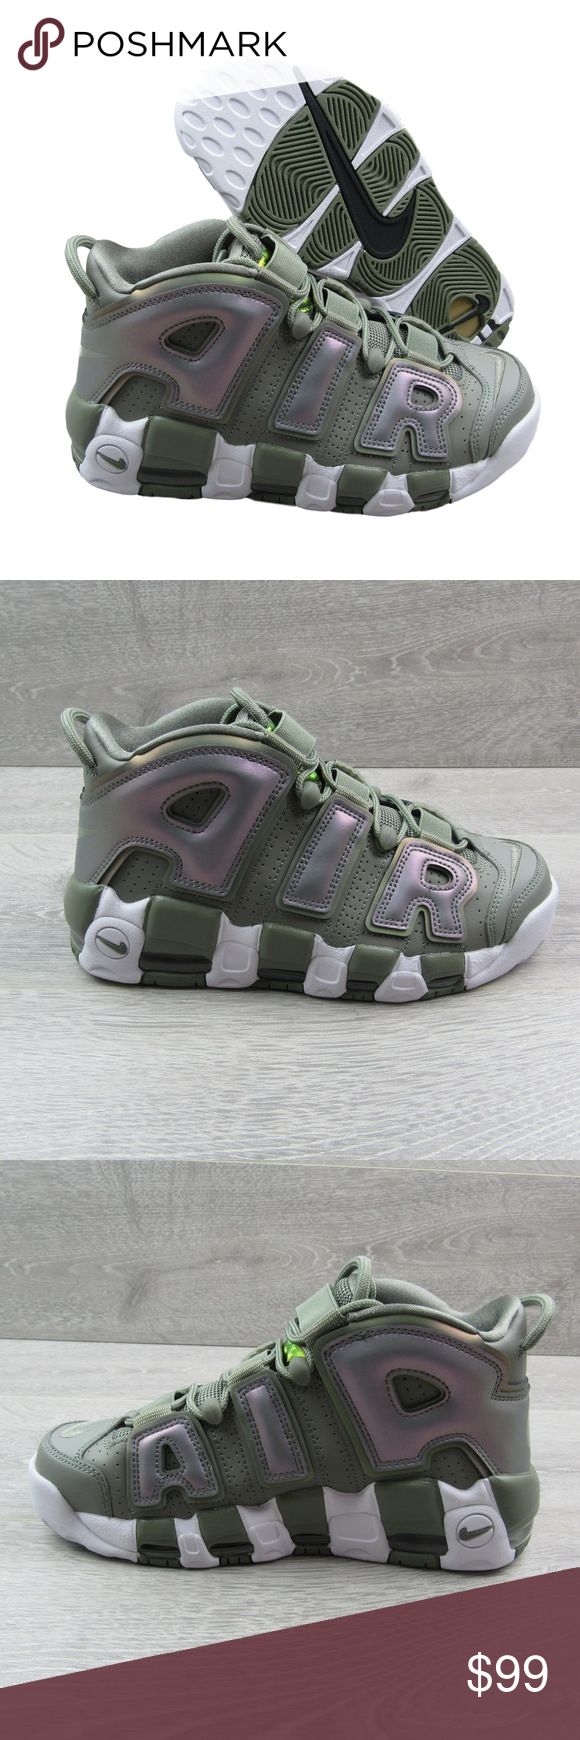 ea8f3fb5bd Nike Air More Uptempo Womens Dark Stucco Green PRICE IS FIRM - NO OFFERS  PLEASE Nike